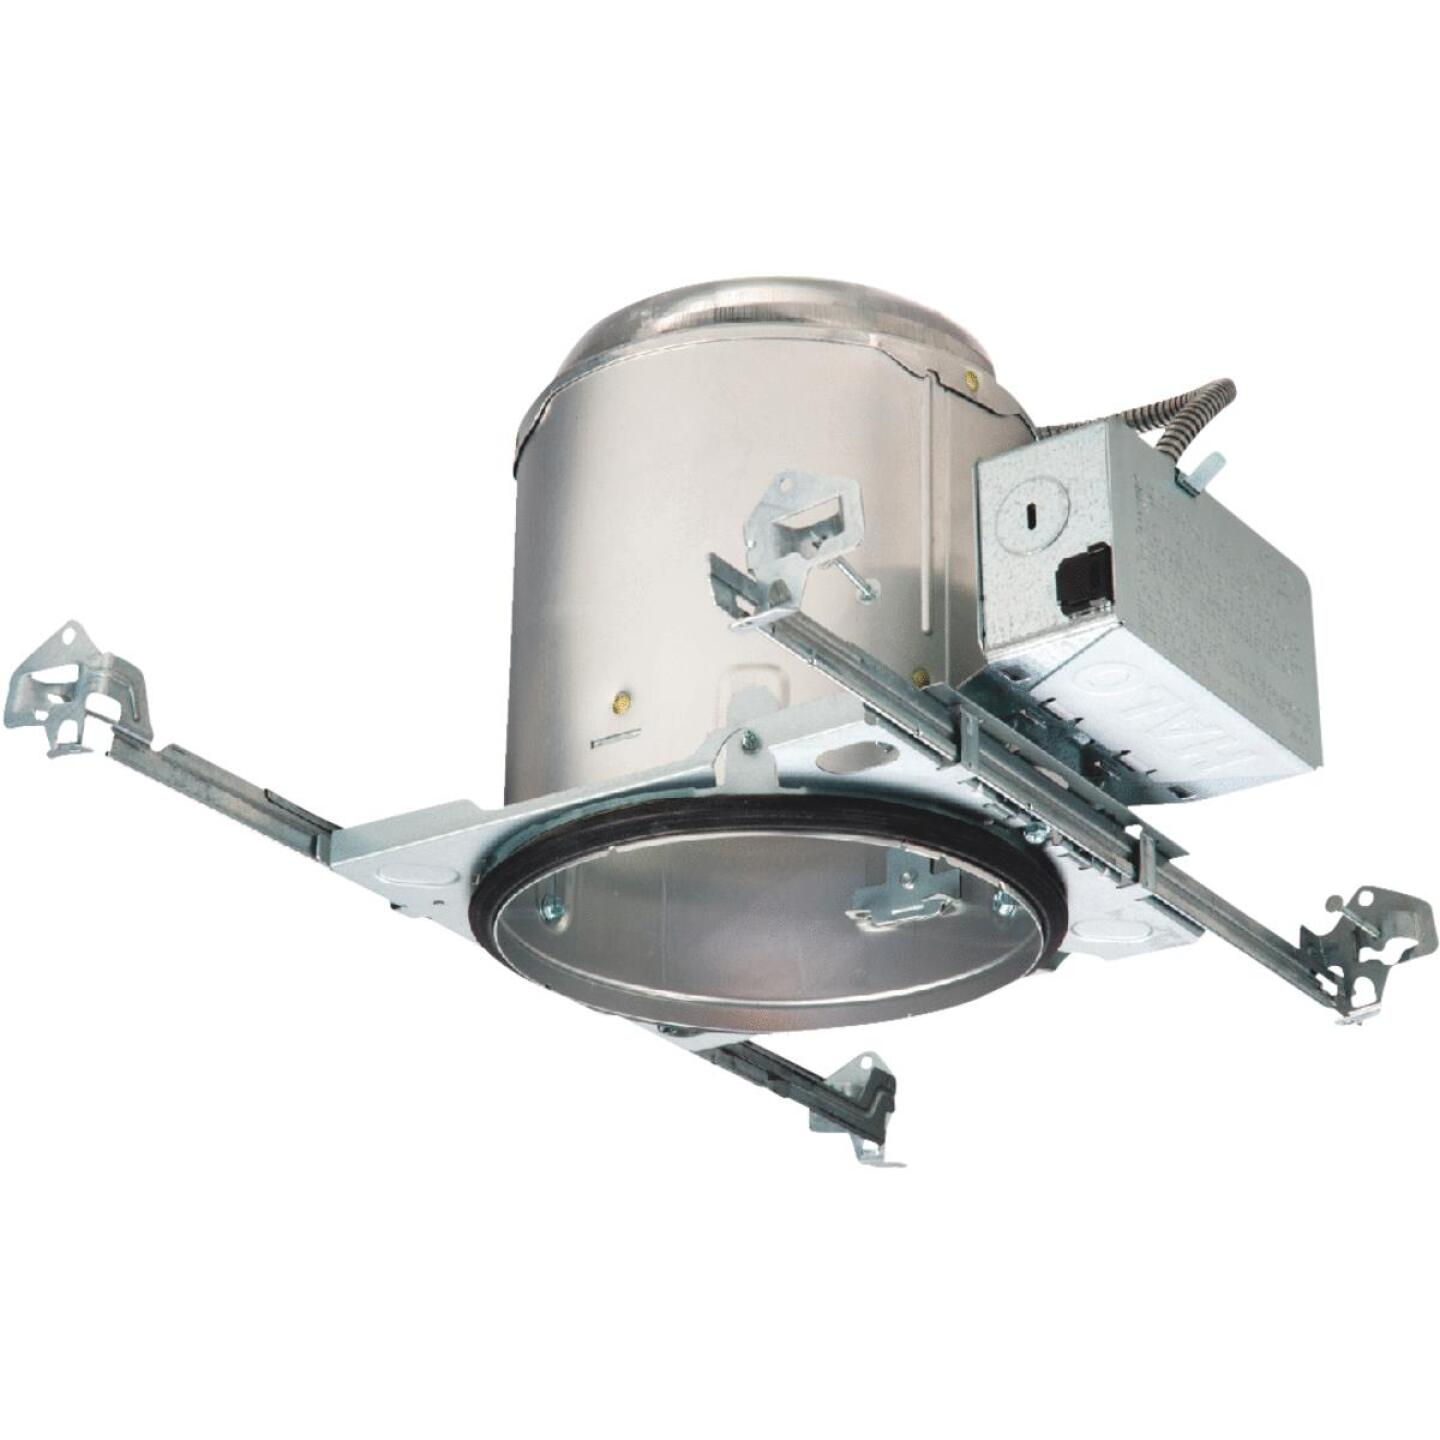 Halo Air-Tite 6 In. New Construction IC/Non-IC Rated Recessed Light Fixture Image 1